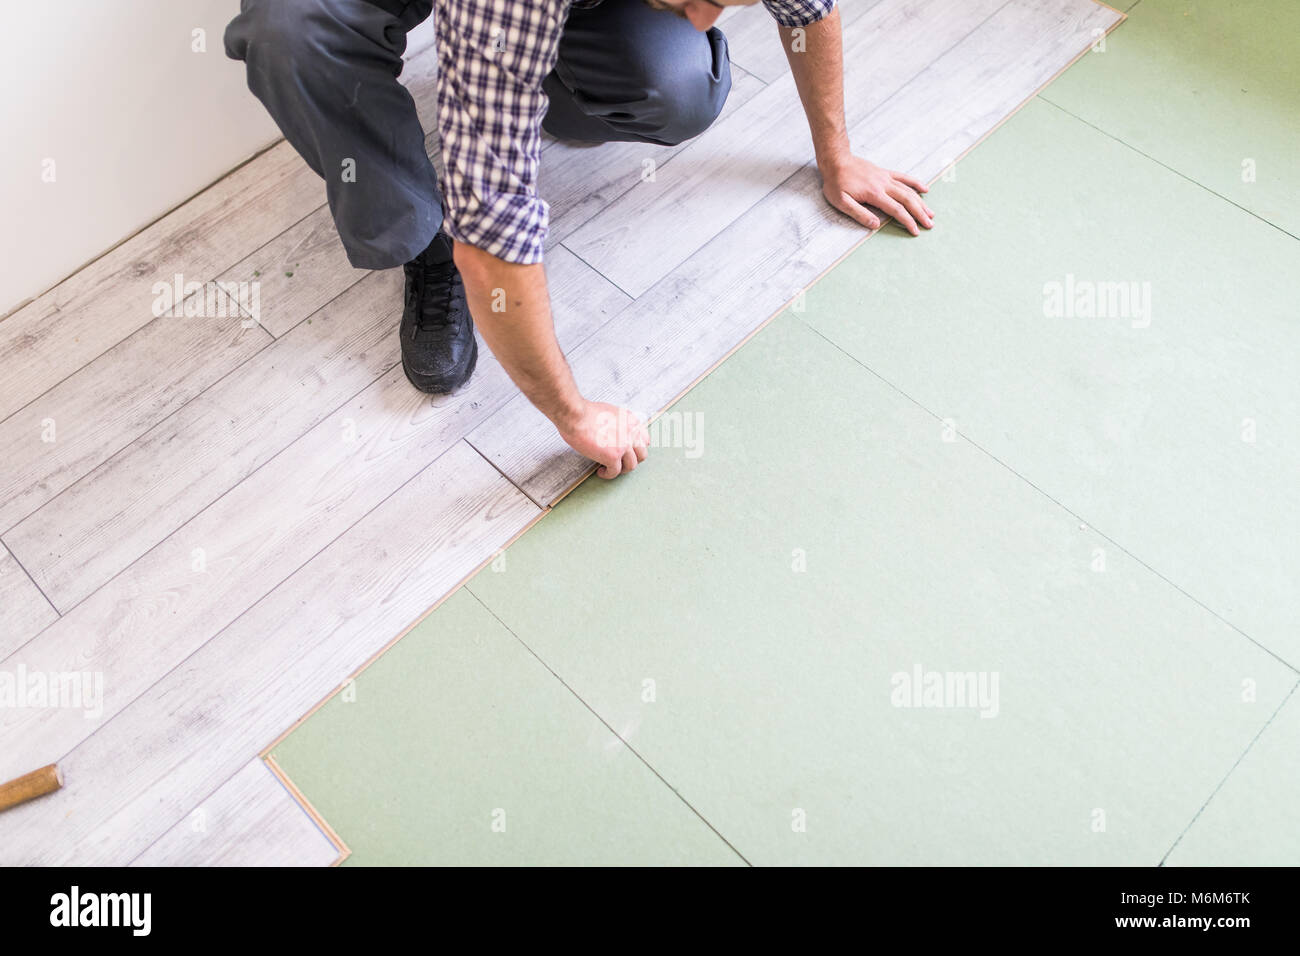 carpenter worker installing laminate flooring in the room - Stock Image